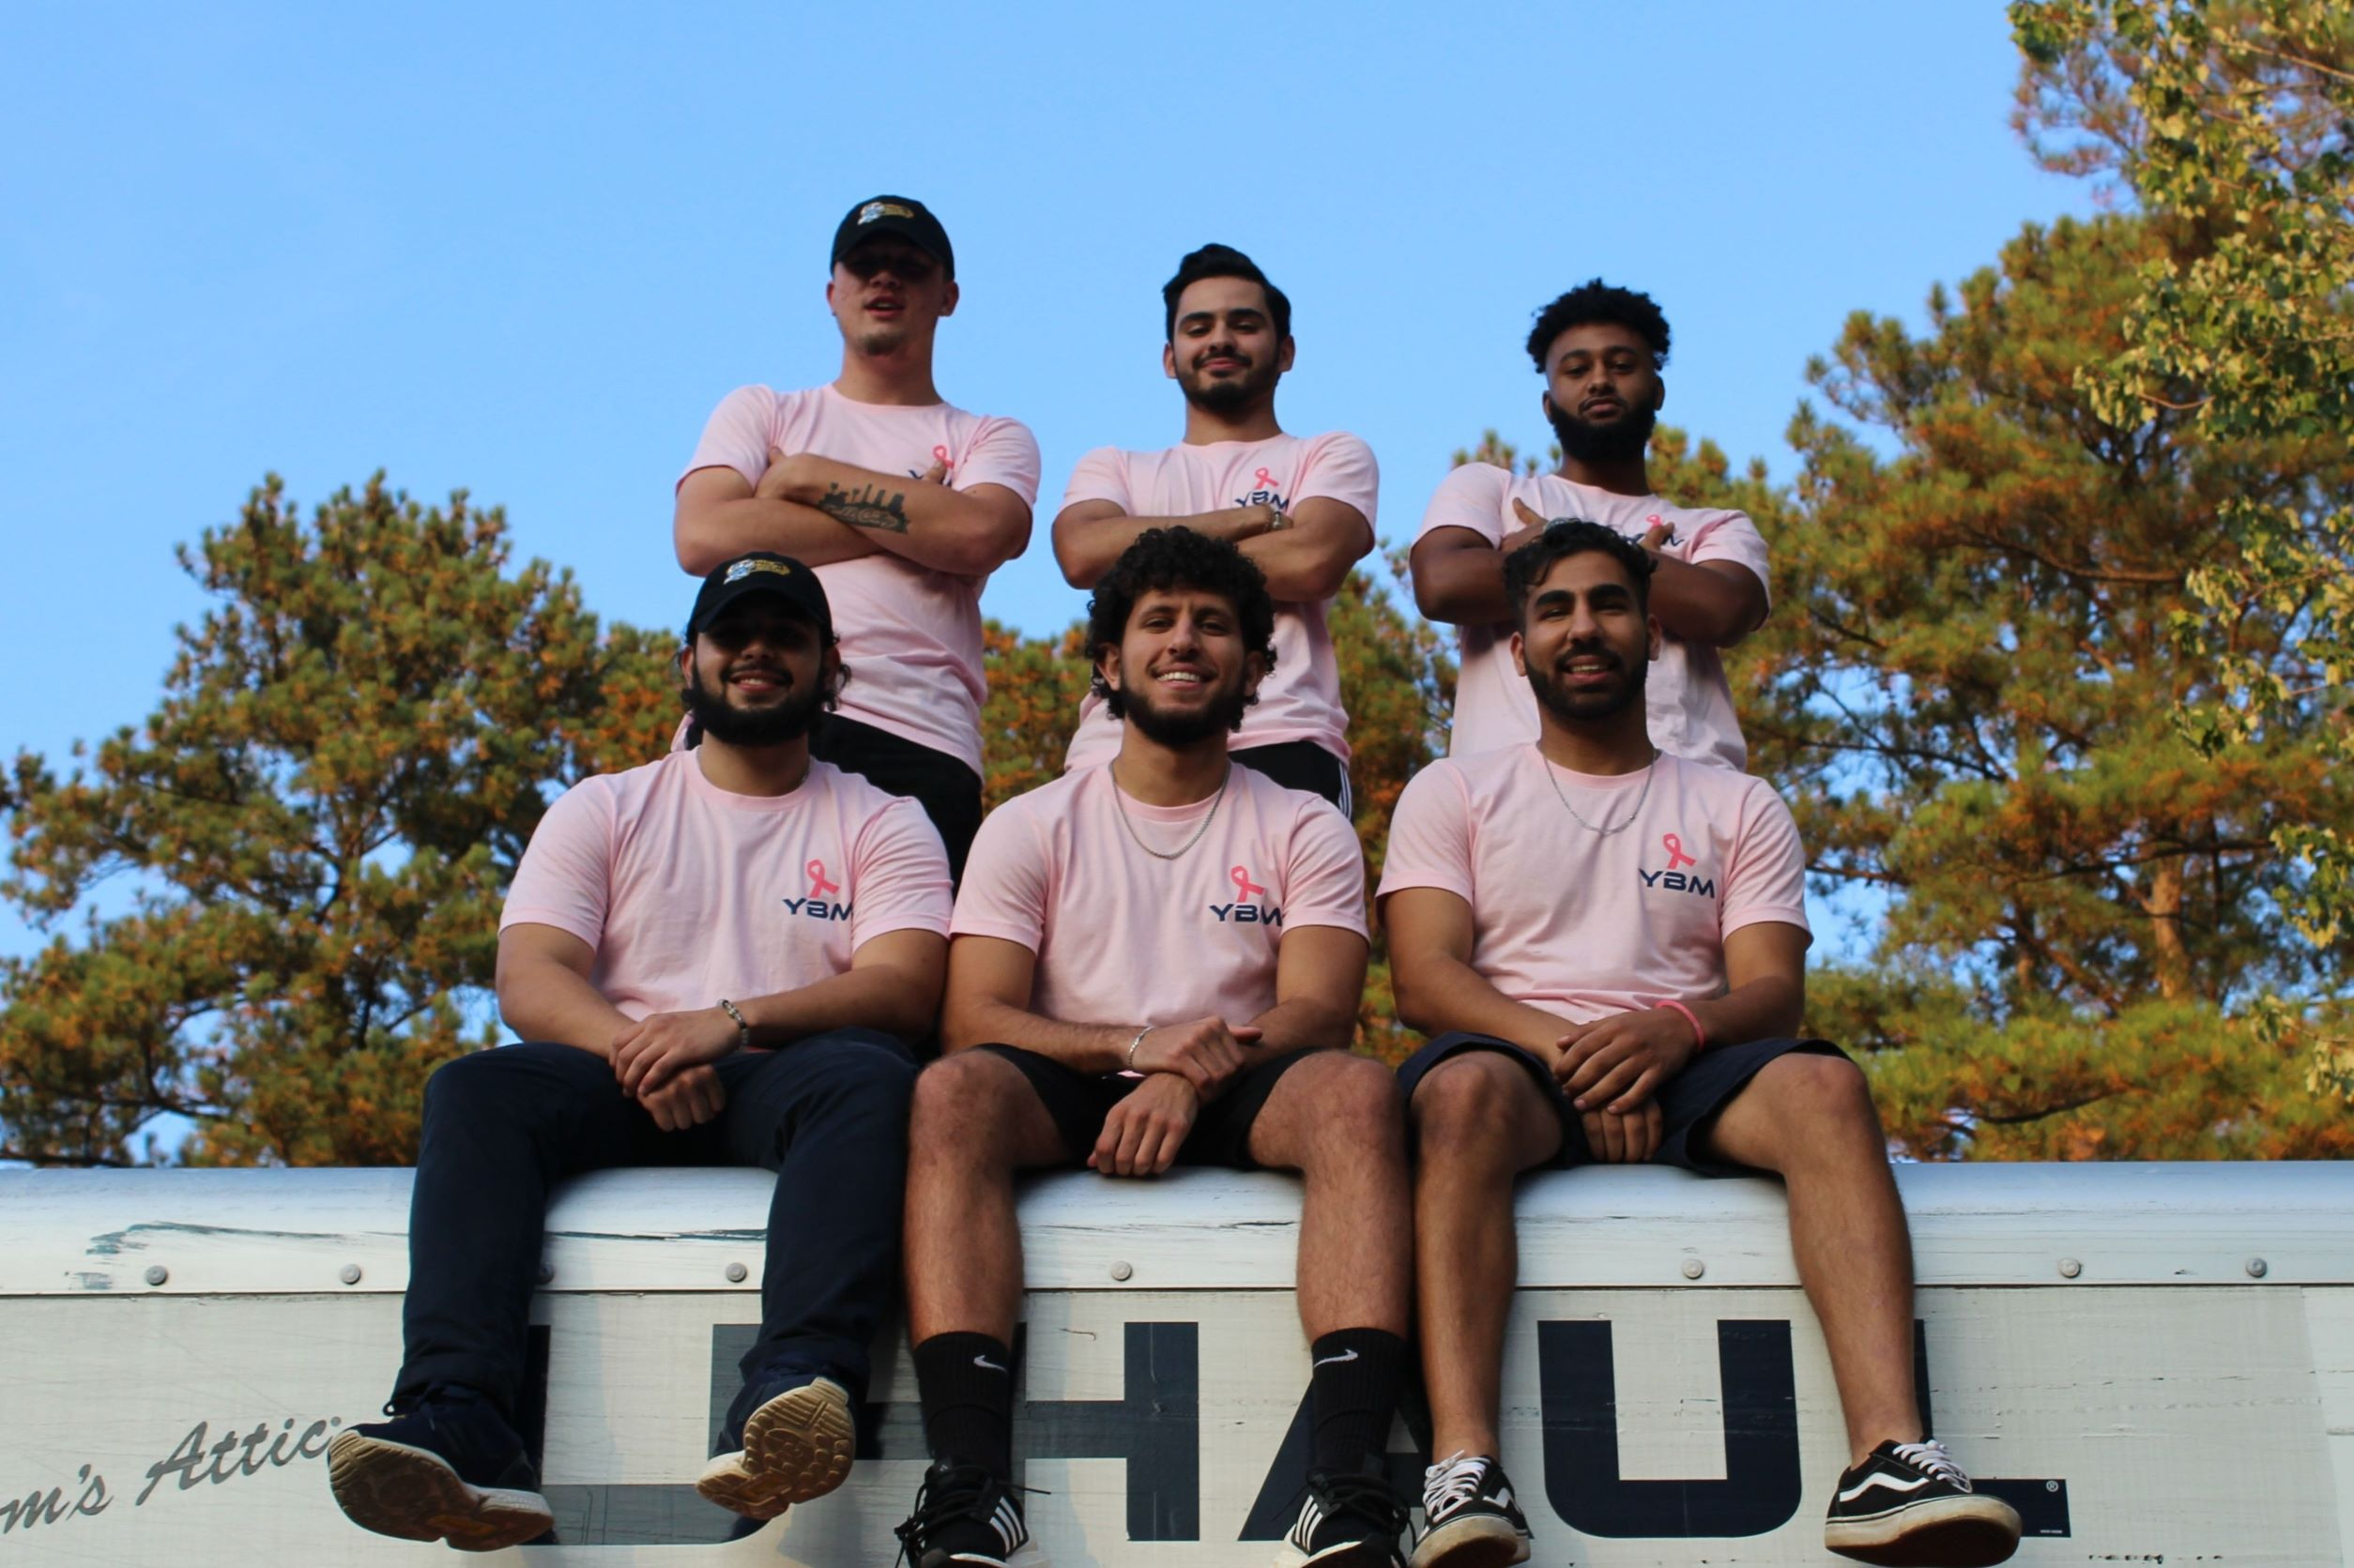 YBM crew members and leaders pose with the breact cancer awareness merch on top of a truck